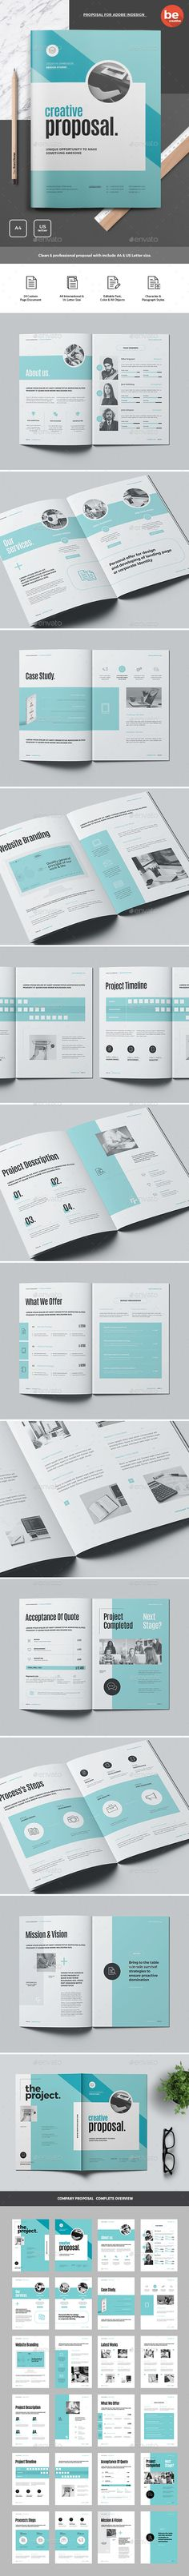 Proposal Brochure Template InDesign INDD - 24 Custom Pages Document - A4 International & Us Letter Size